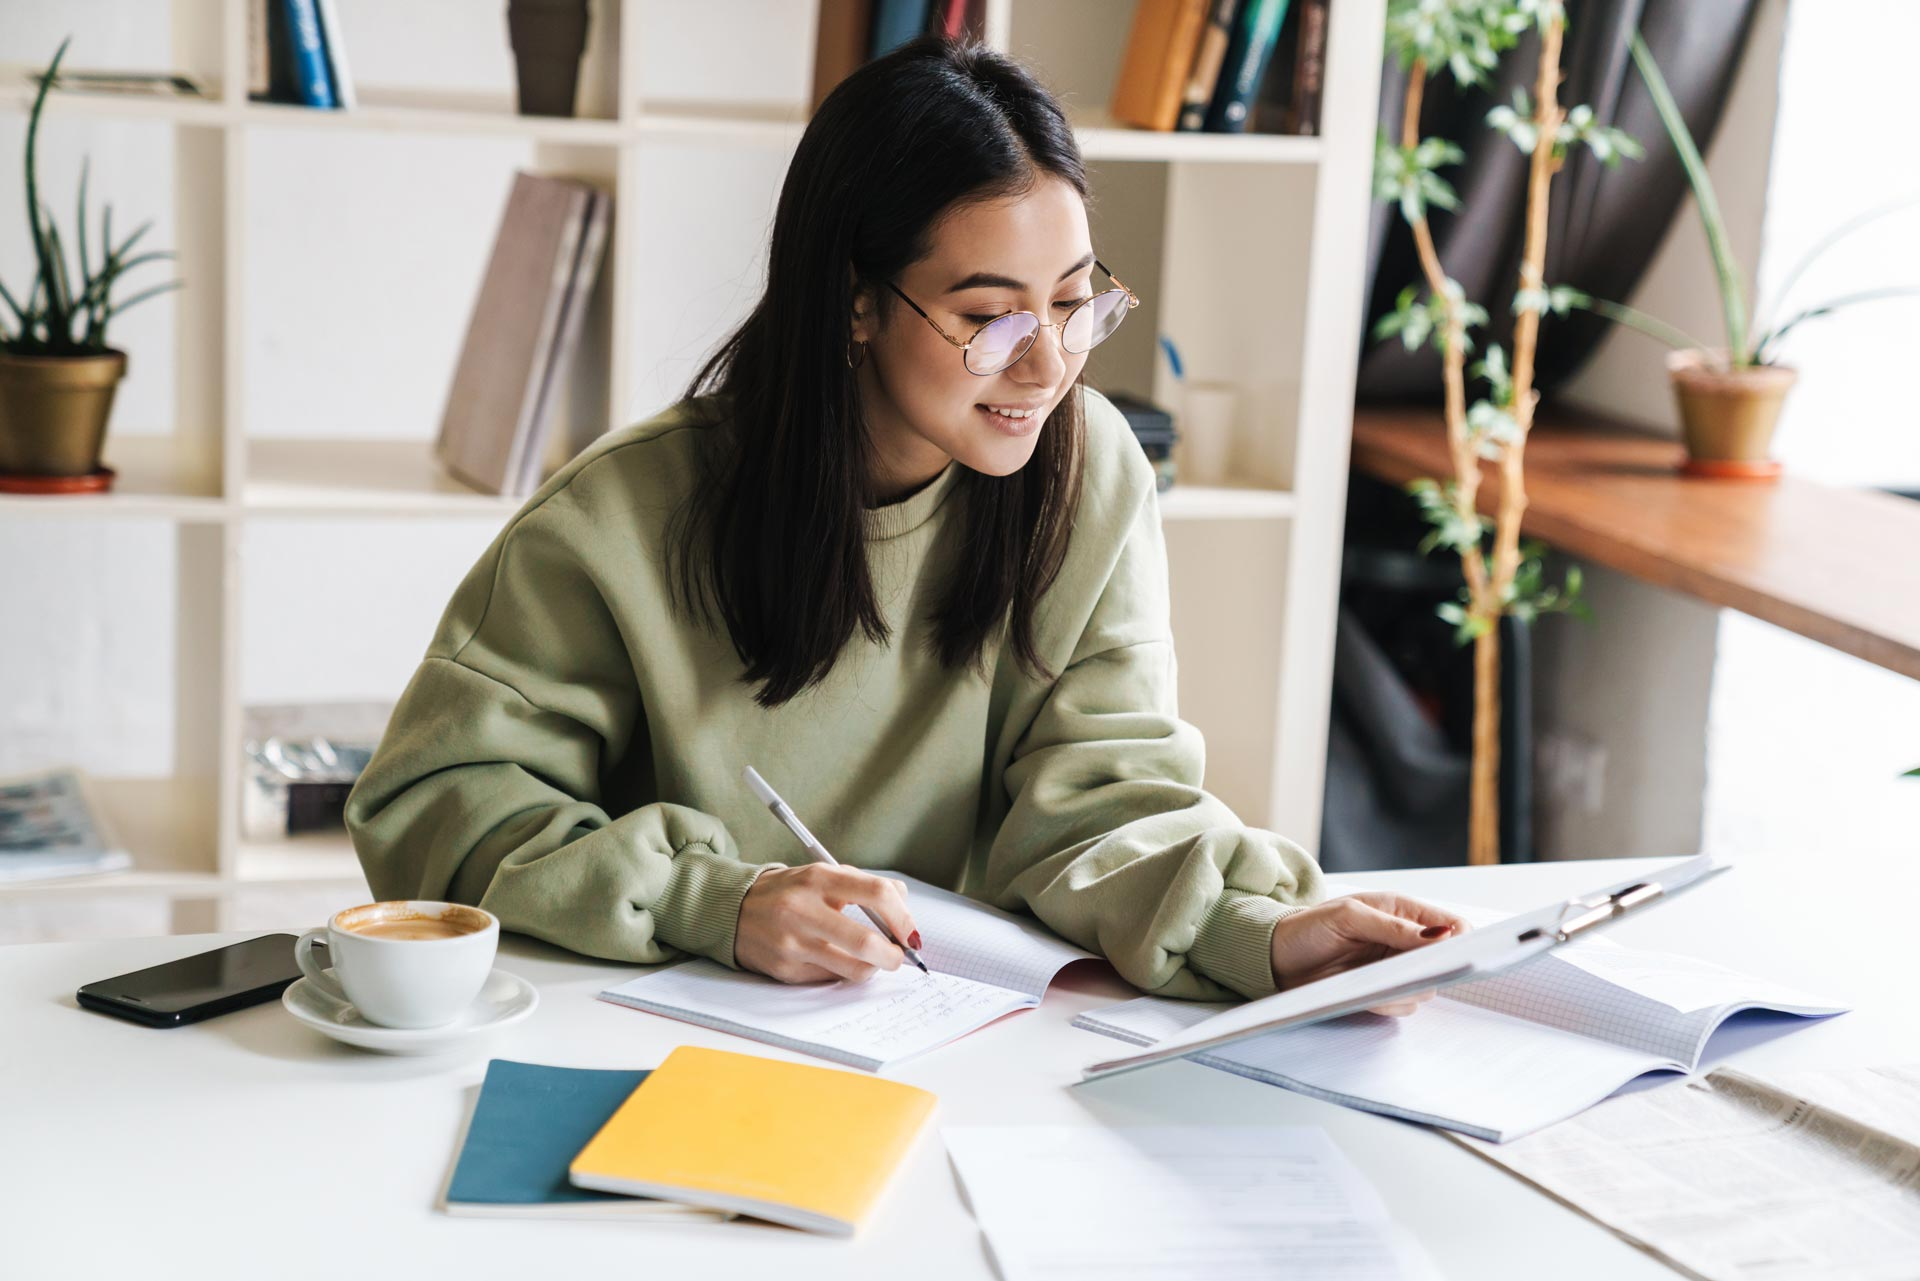 attractive-young-girl-student-studying-at-the-coll-7CLAZTG